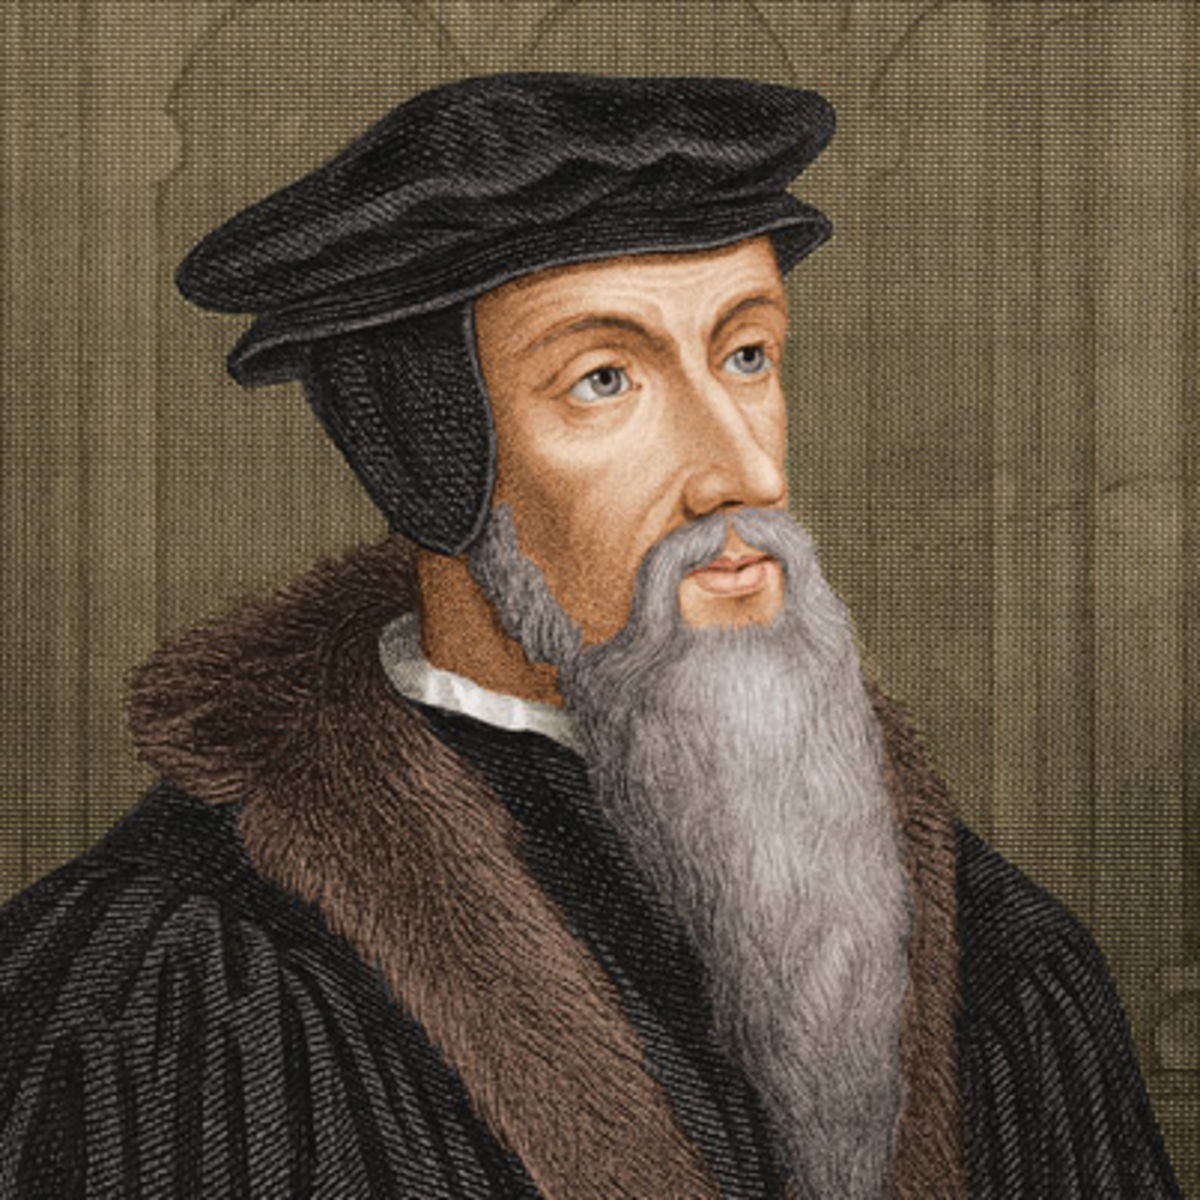 John Calvin (1509 - 1564) was a French theologian and pastor during the Protestant Reformation who was a principal figure in the development of Calvinism.  Learn more...